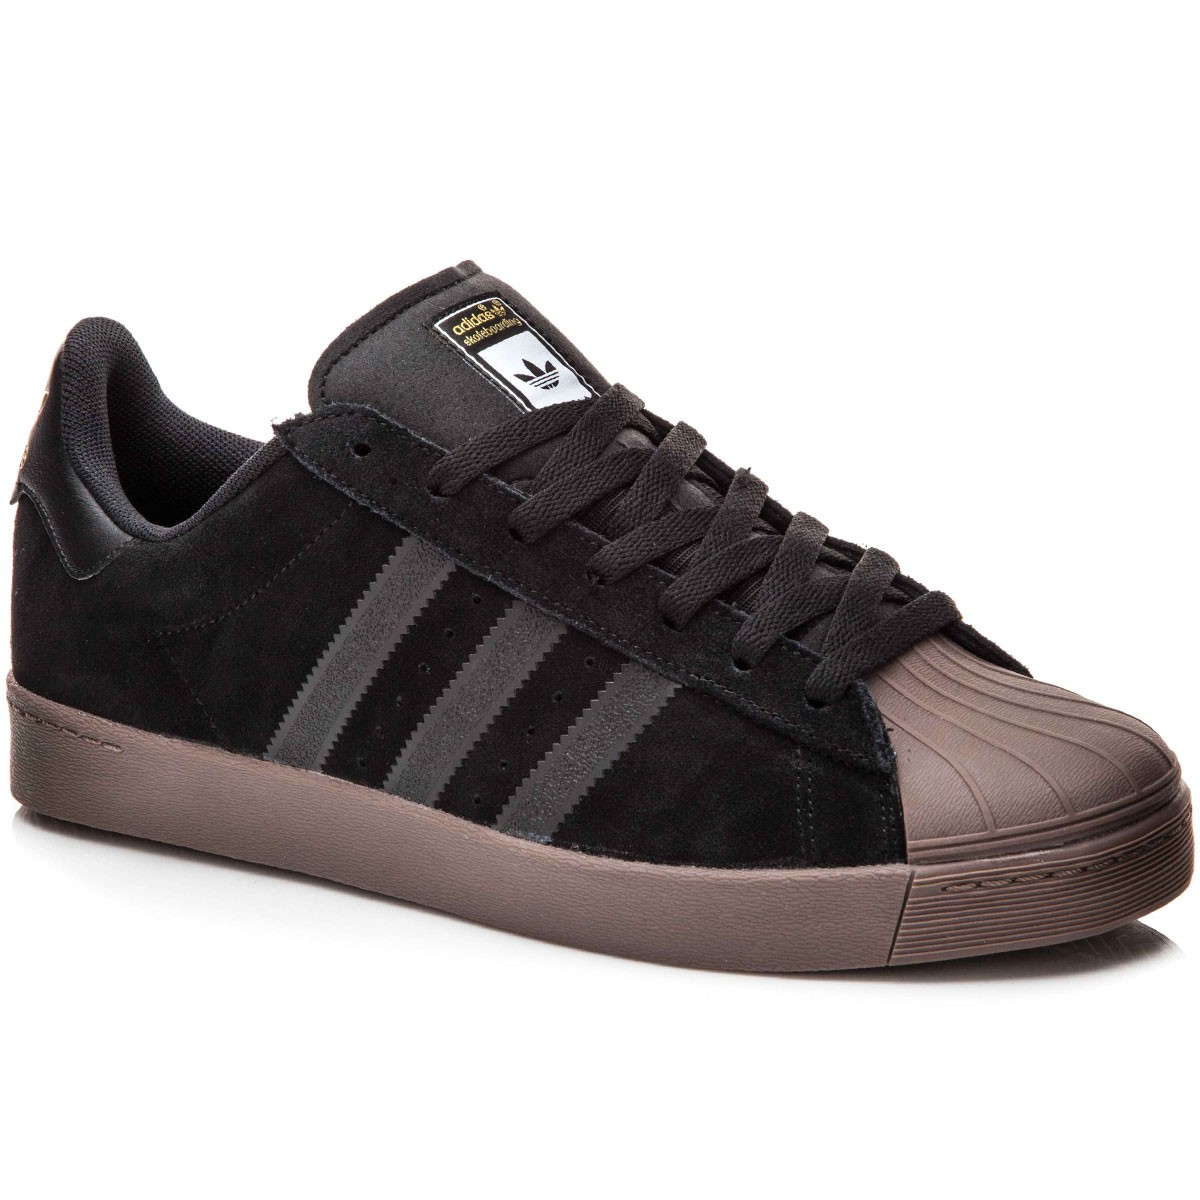 Adidas Superstar Vulc Adv Shoes - Black/Metallic Gold/Red